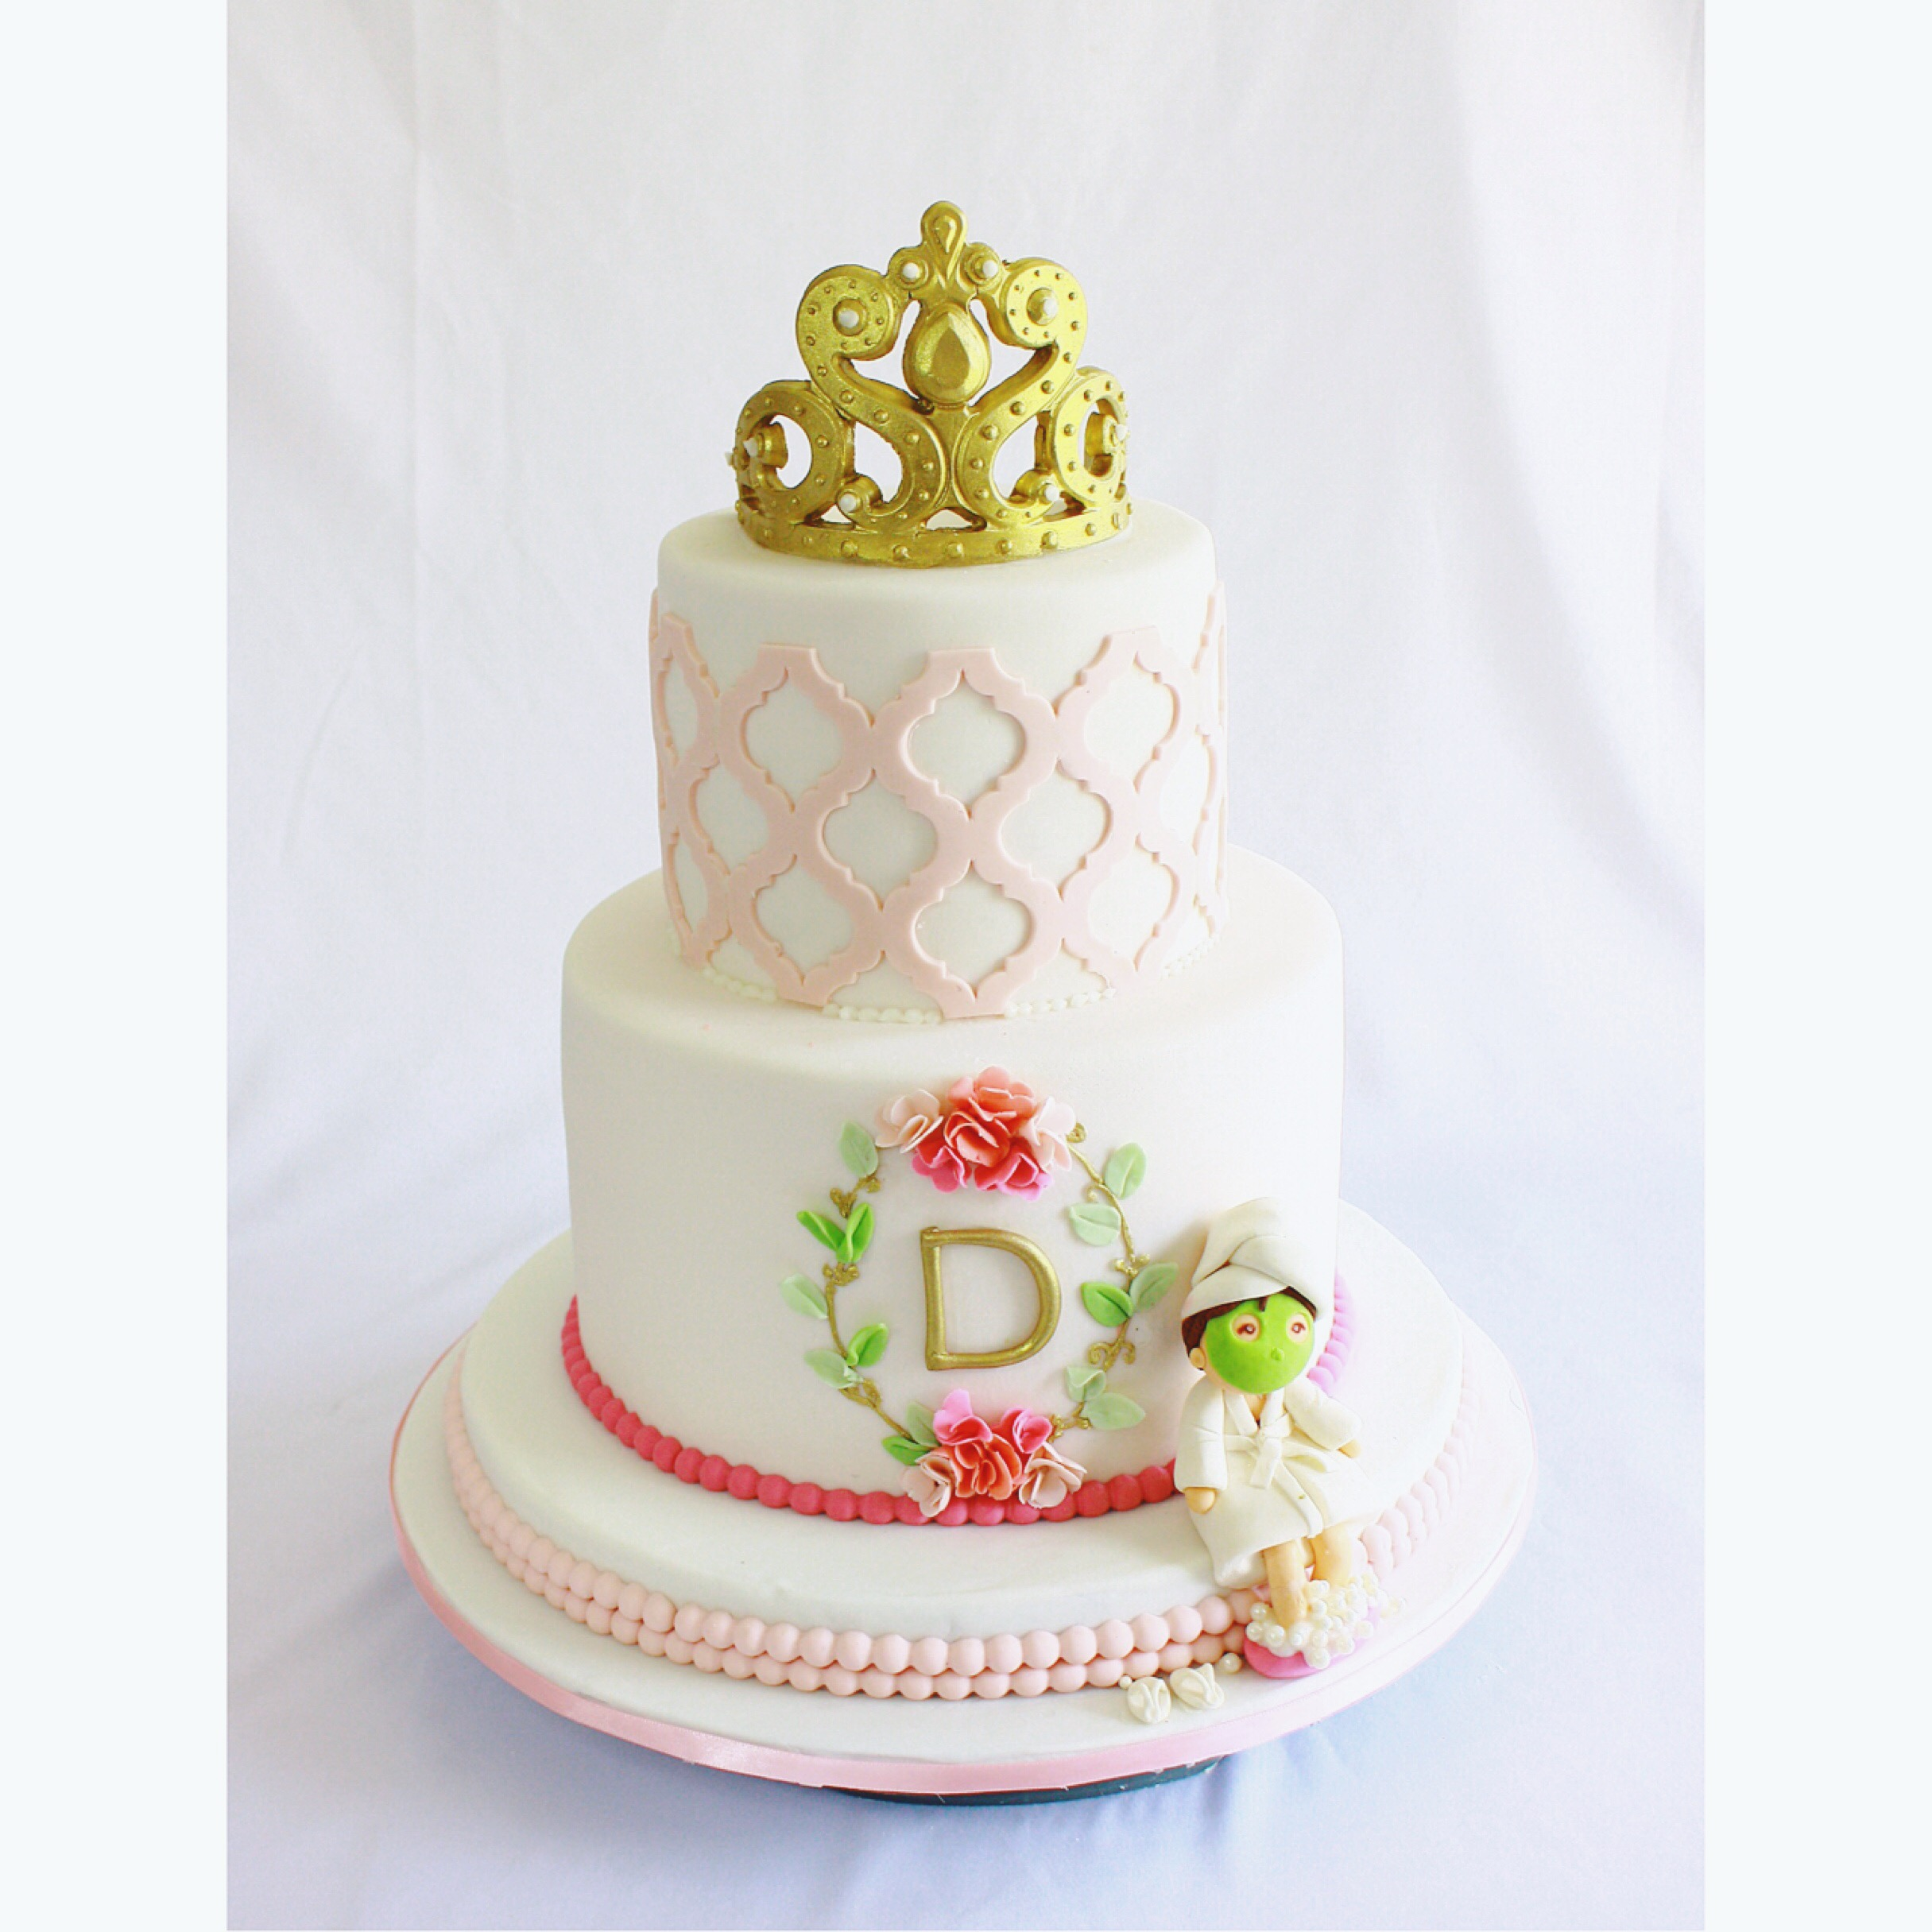 White with pink mom birthday cake with crown